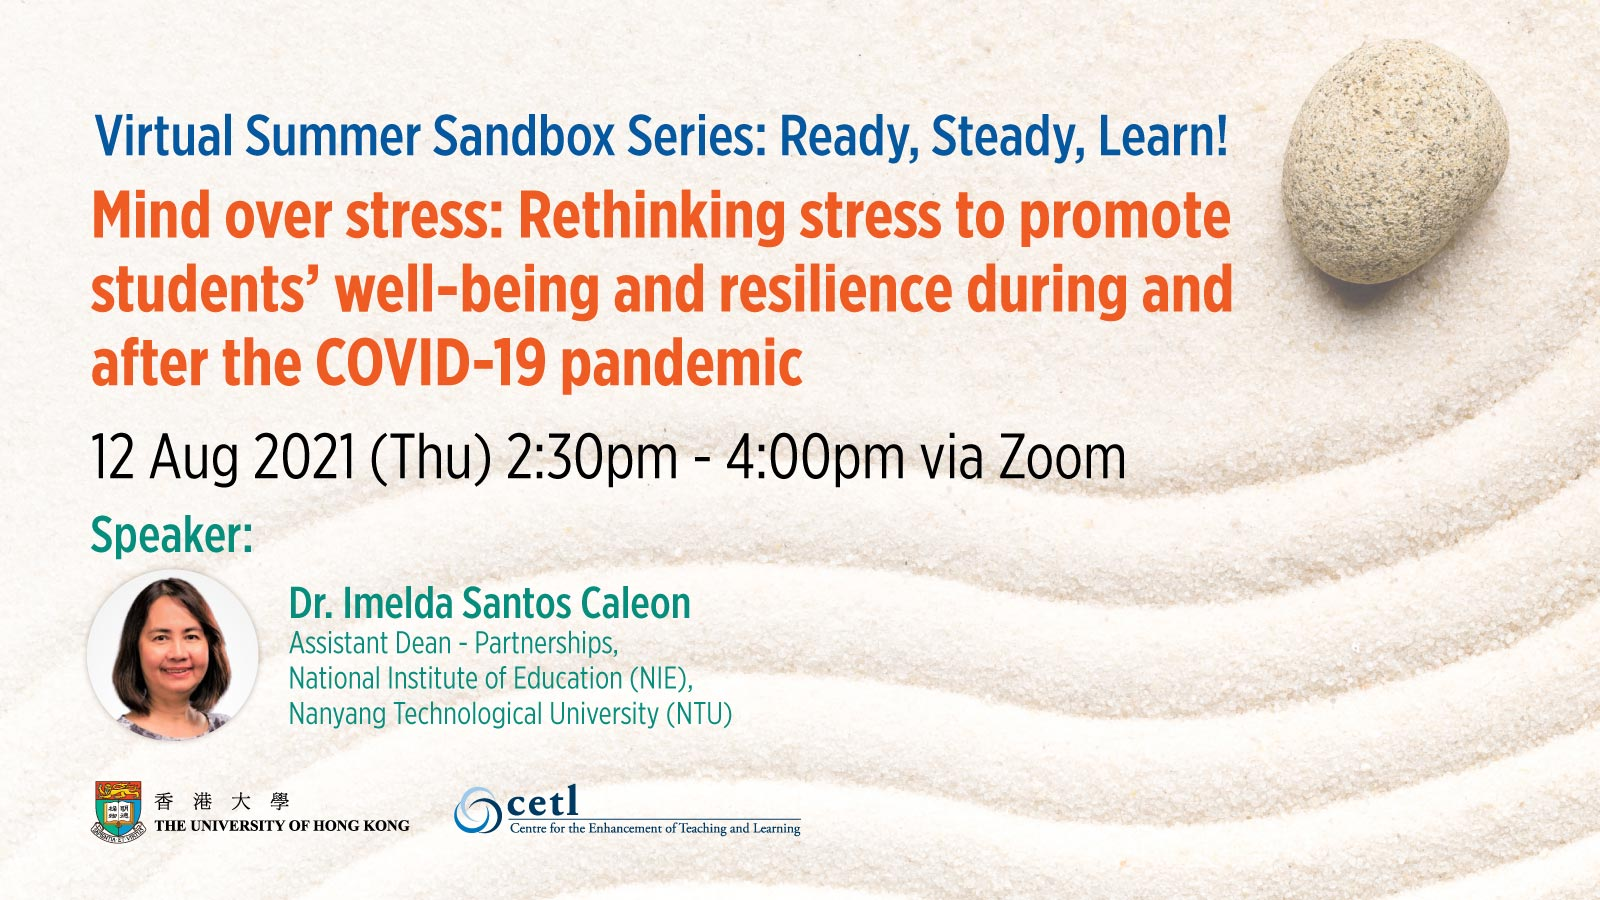 Session 3: Mind over stress: Rethinking stress to promote students' well-being and resilience during and after the COVID-19 pandemic